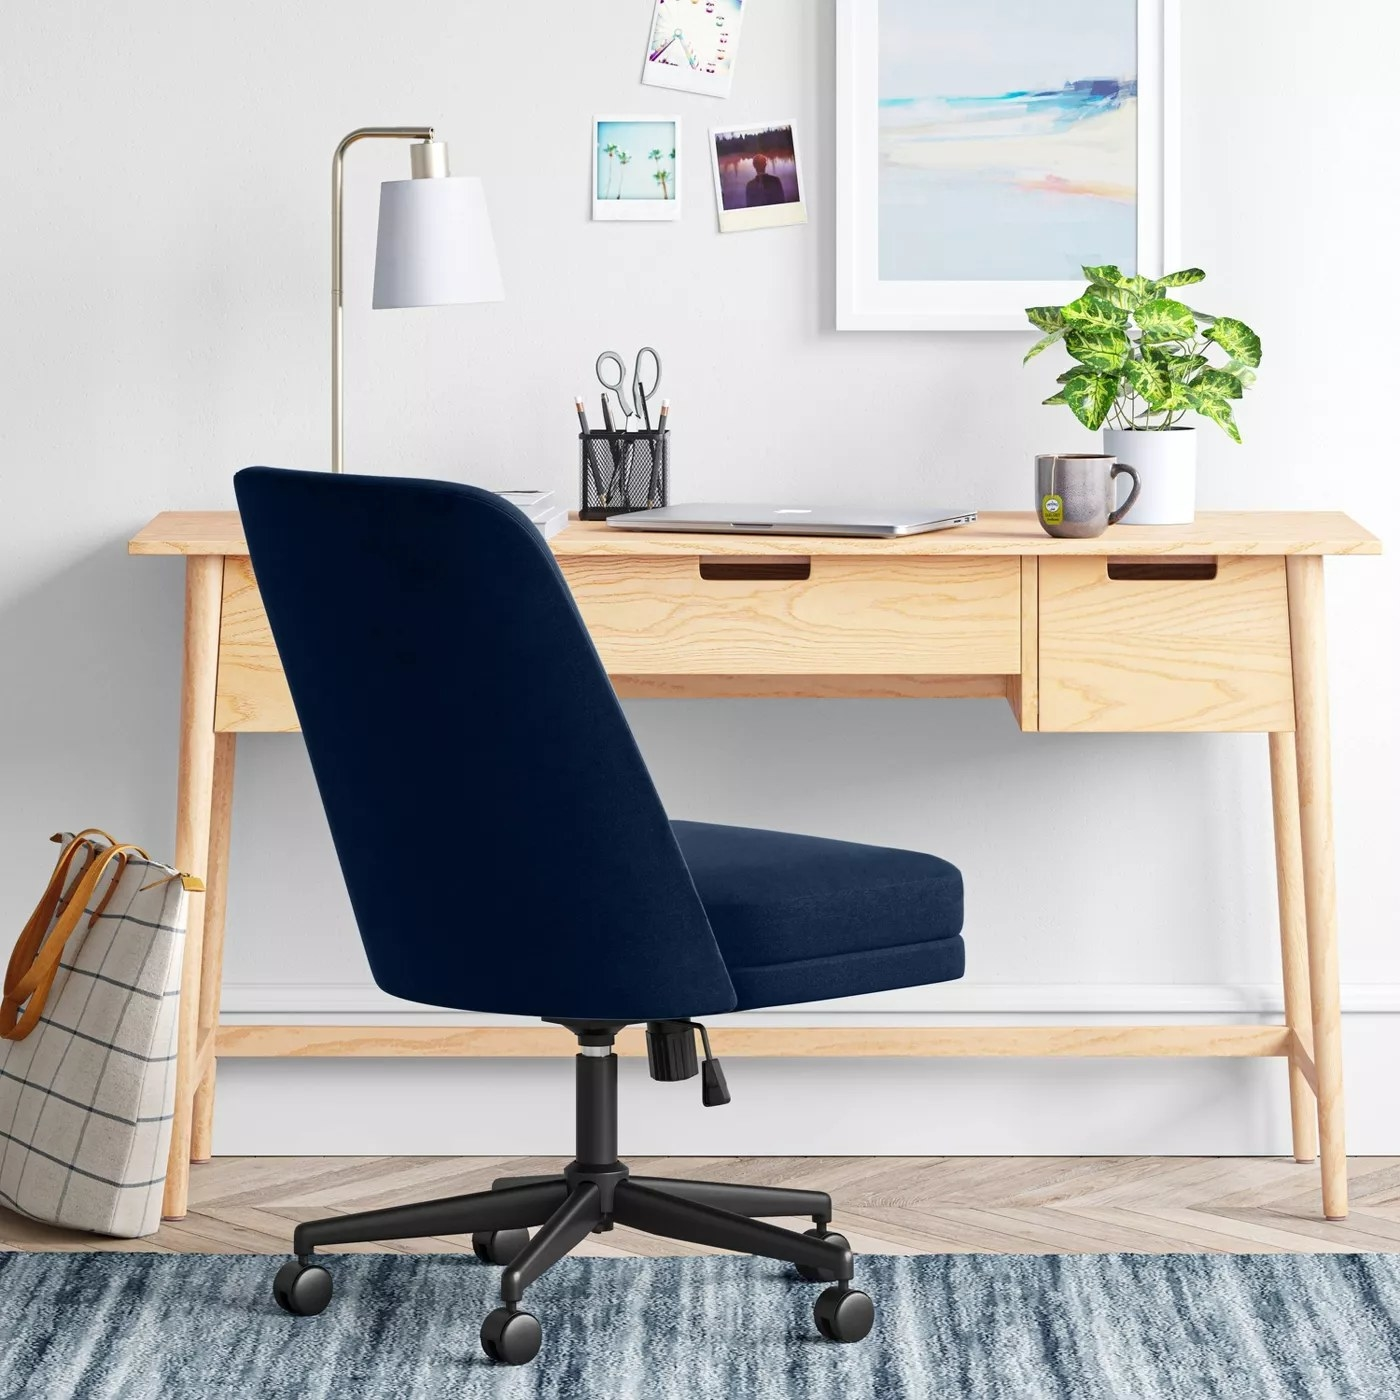 The armless, navy chair on wheels in a home office